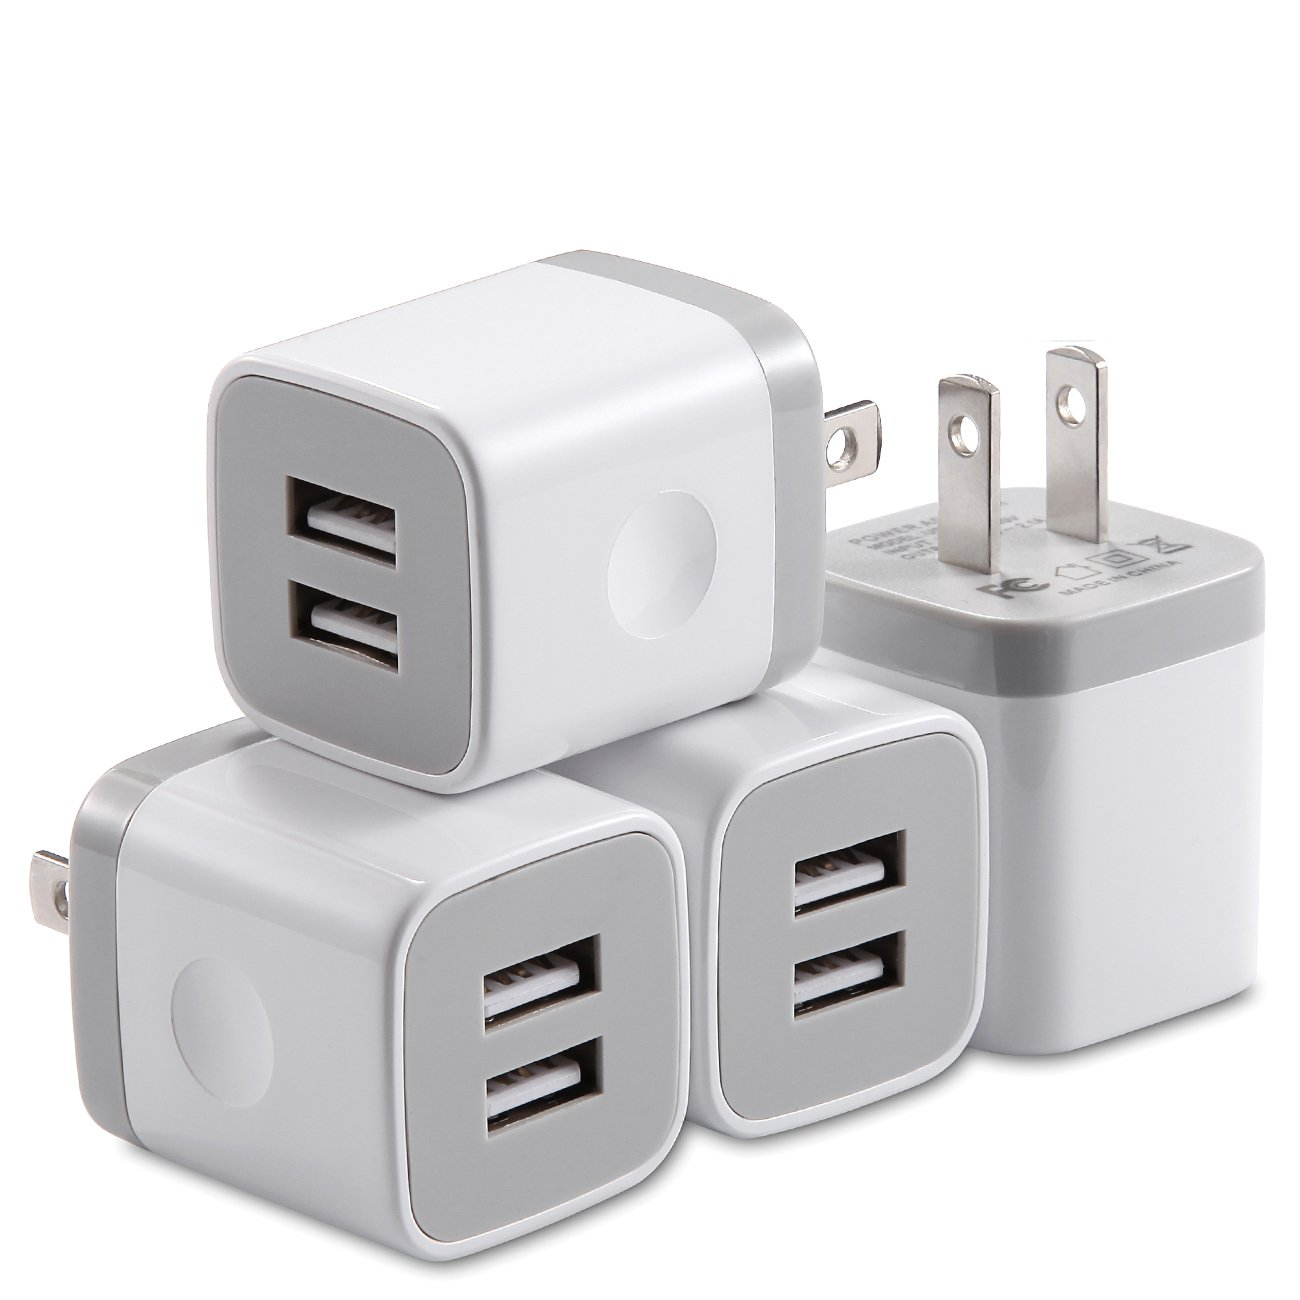 X-EDITION USB Wall Charger,4-Pack 2.1A Dual Port USB Cube Power Adapter Wall Charger Plug Charging Block Cube for Phone 8/7/6 Plus/X, Pad, Samsung Galaxy S5 S6 S7 Edge,LG, ZTE, HTC, Android (White)